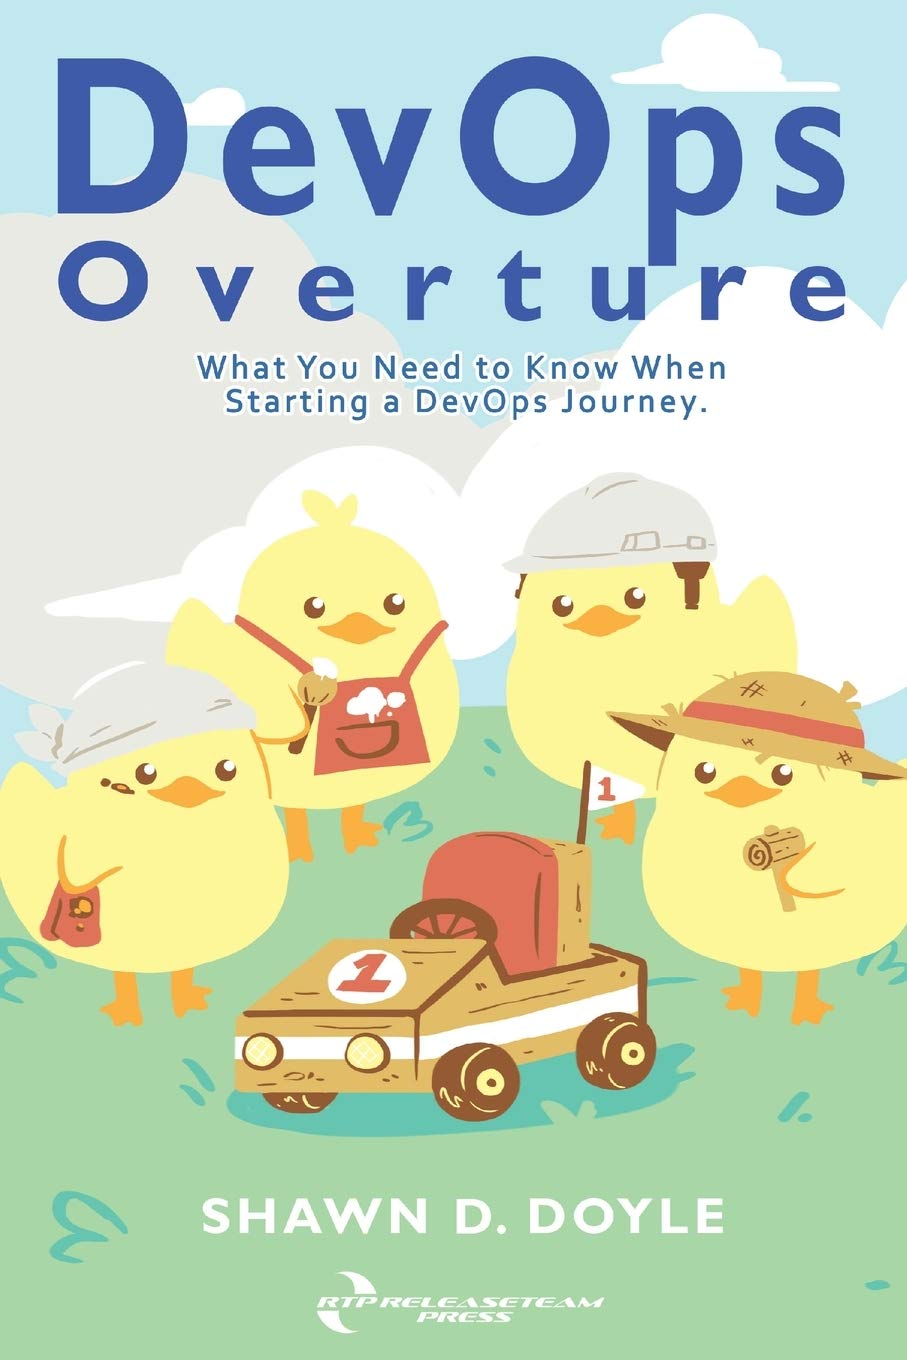 DevOps Overture: What You Need to Know When Starting a DevOps Journey